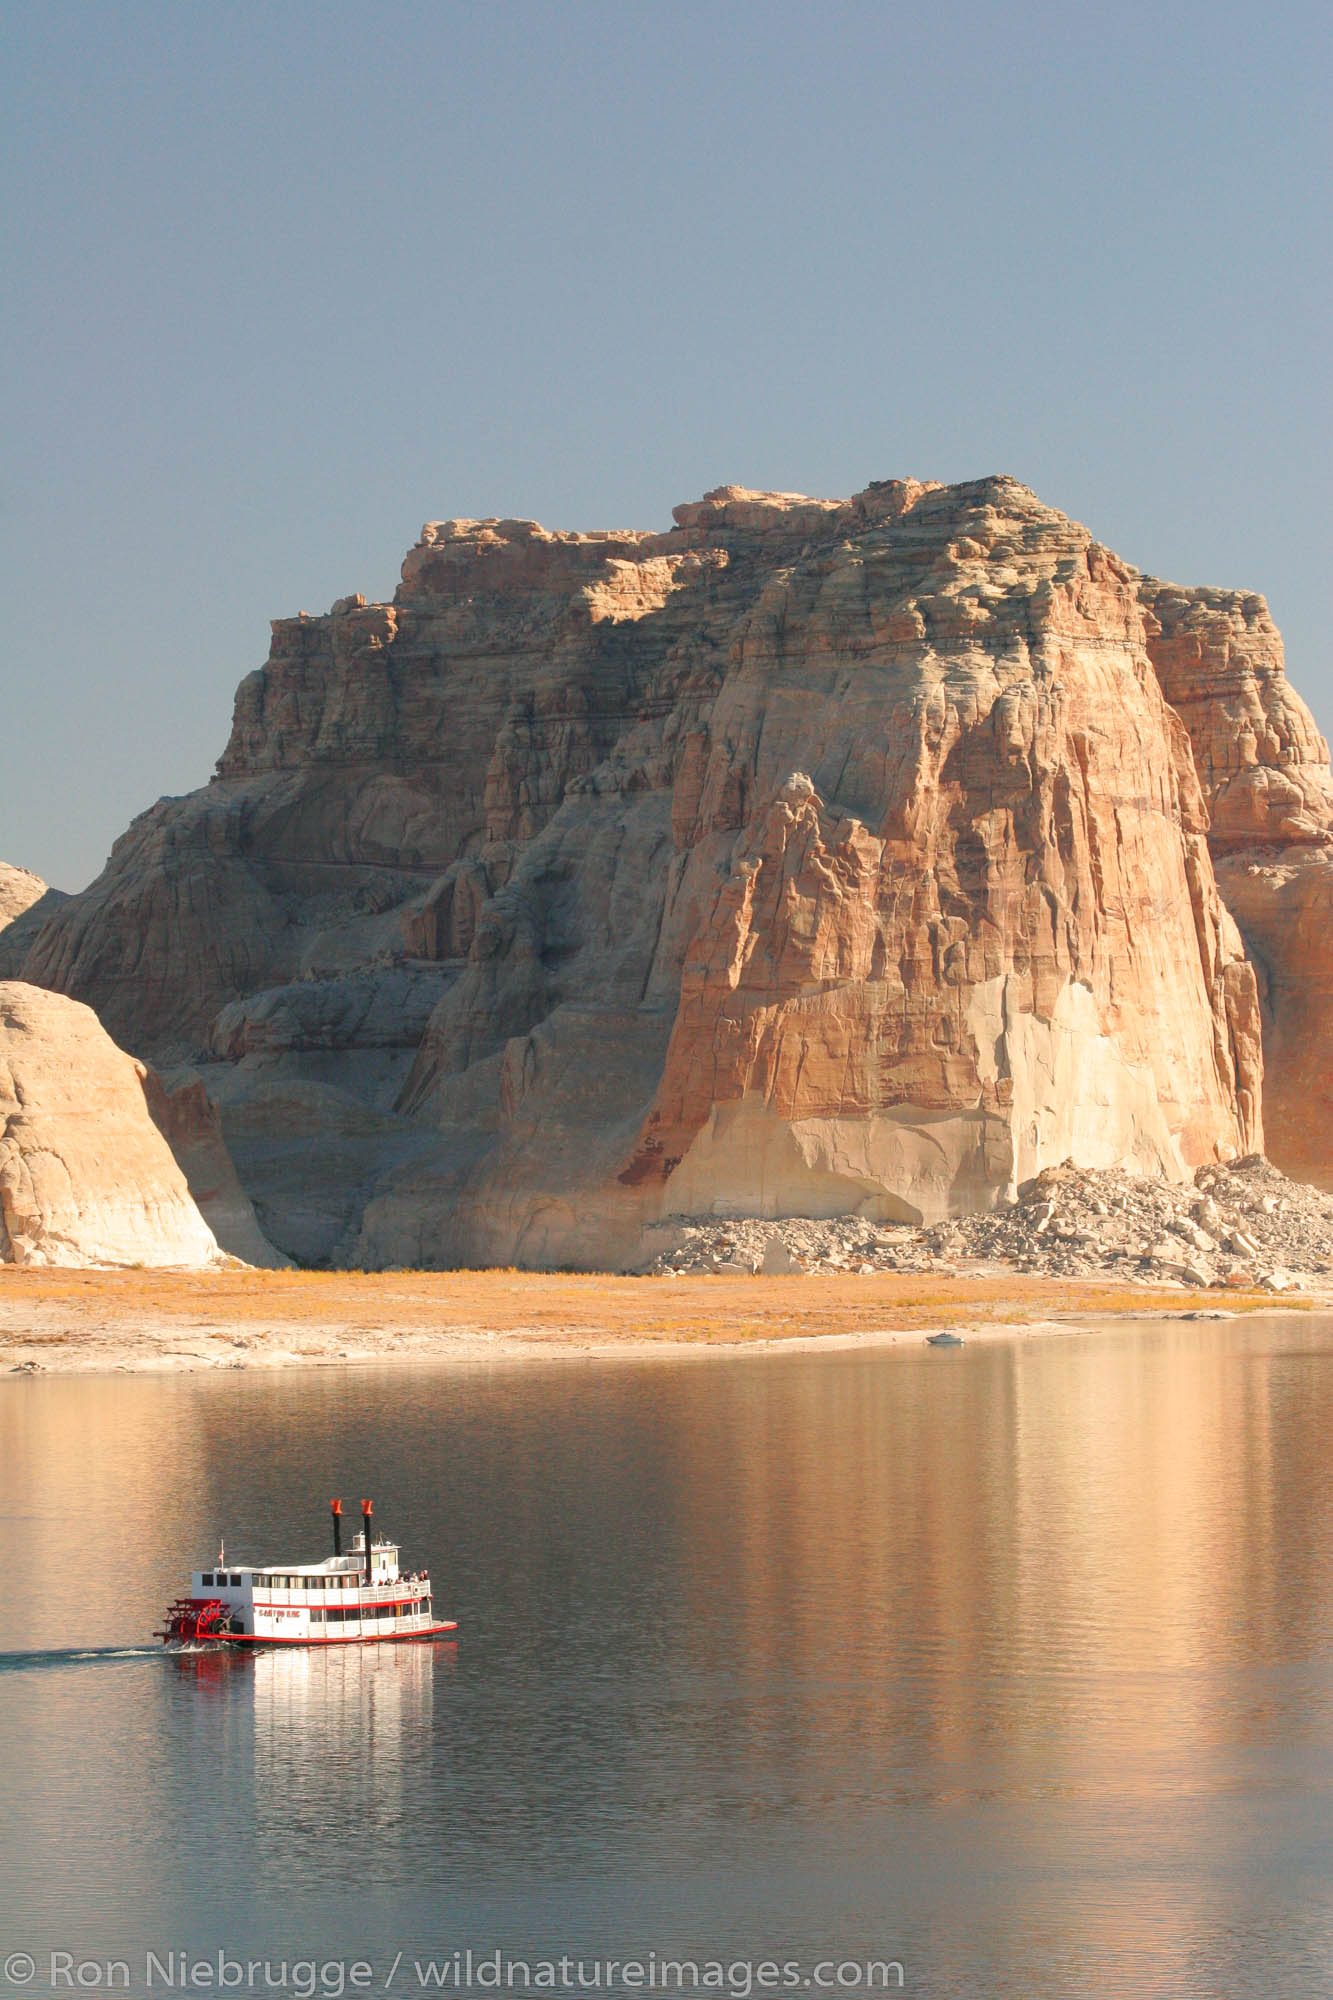 A tour boat passes by the Lone Rock Campground, Lake Powell and the Glenn Canyon Recreation Area, Utah.  This is near Page, Arizona...